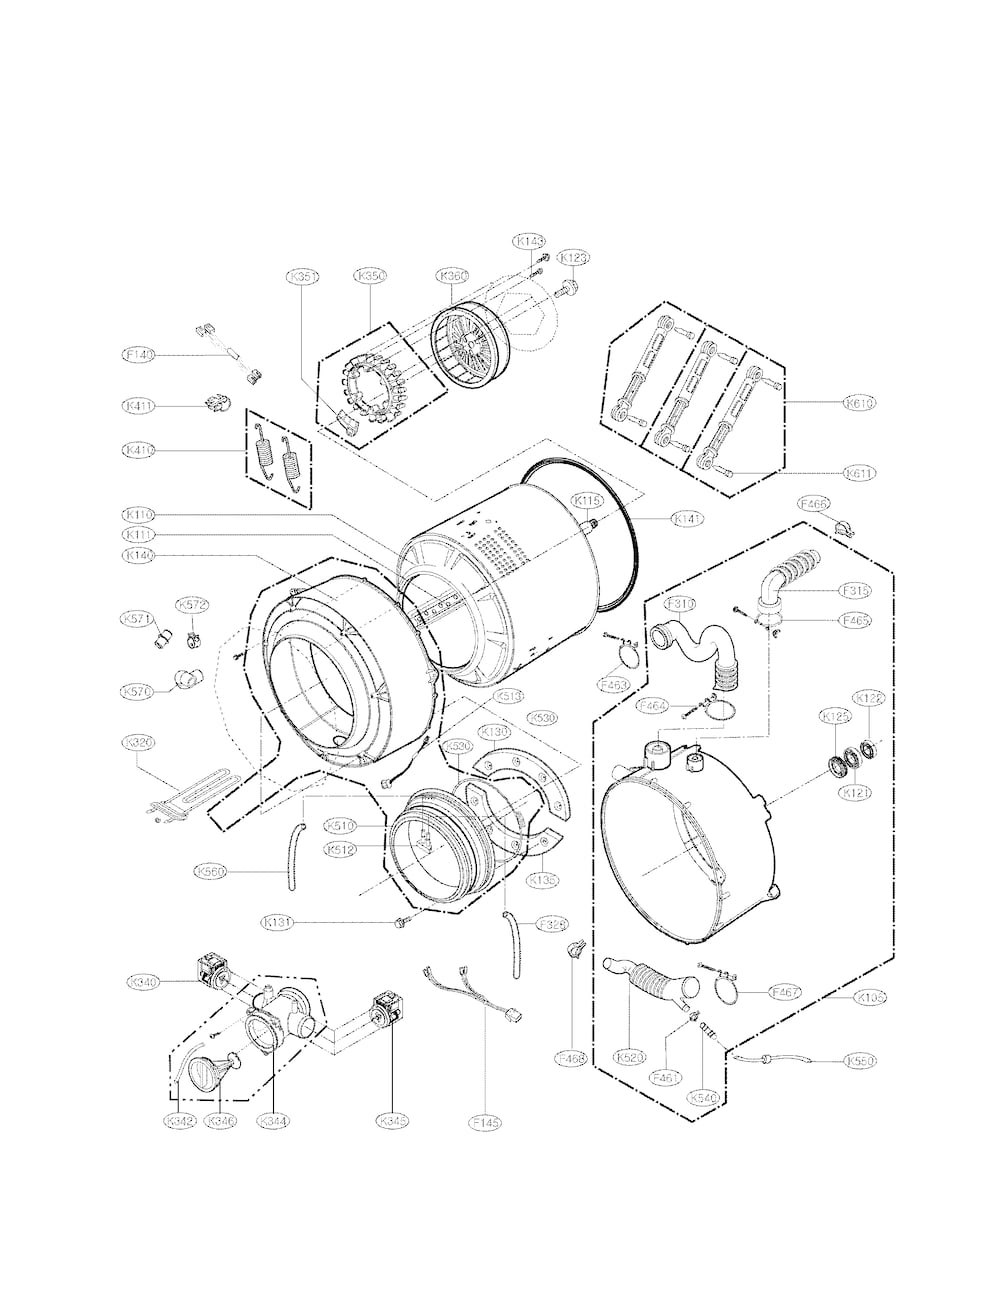 Wiring Diagram: 28 Lg Front Load Washer Diagram